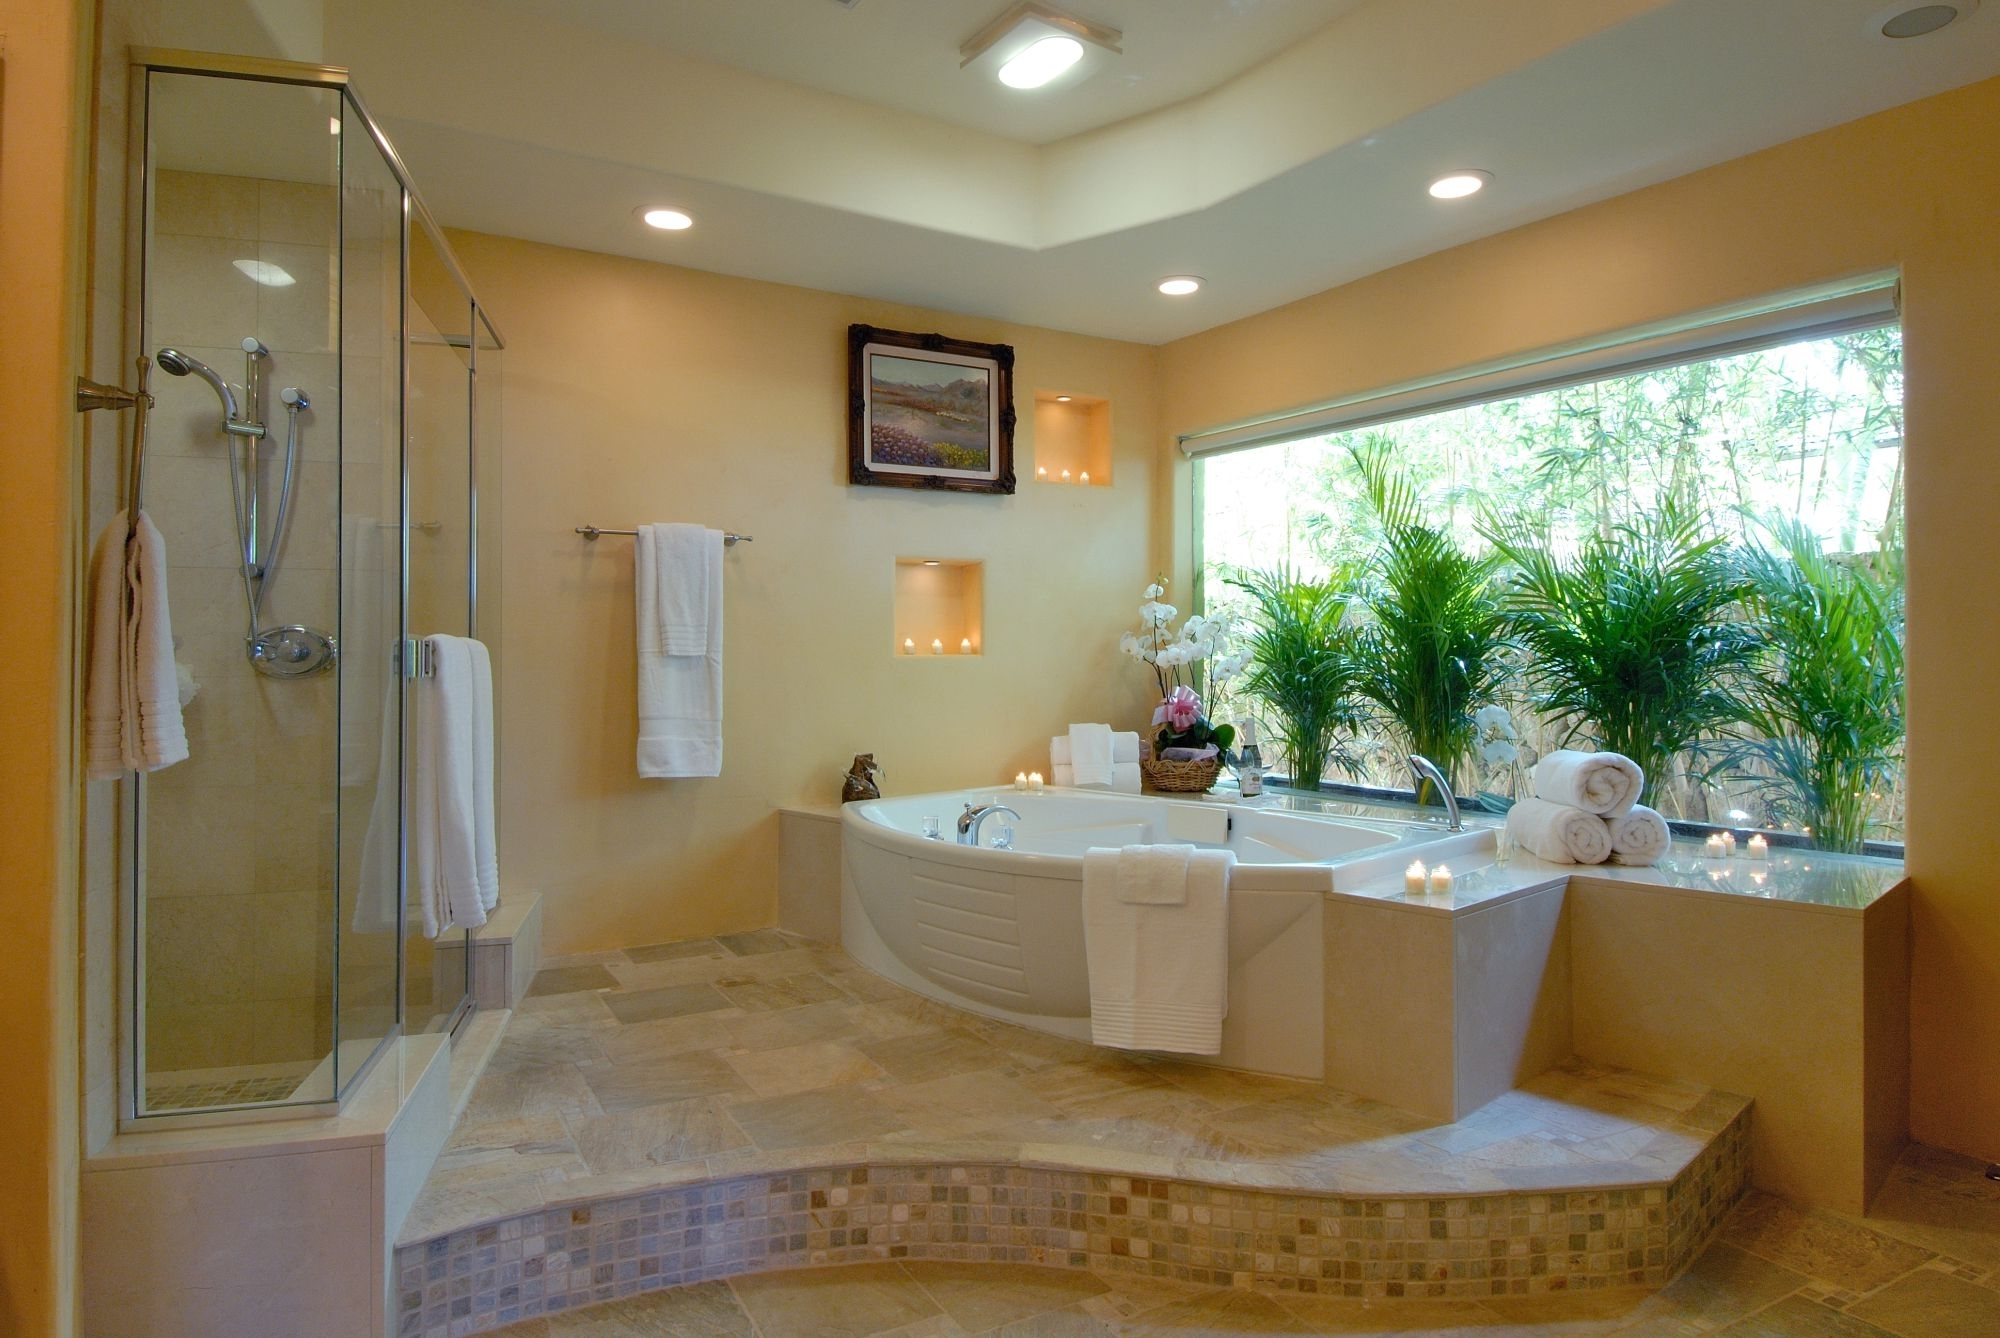 Luxury Bathroom Design With Natural Nuance (Image 4 of 8)